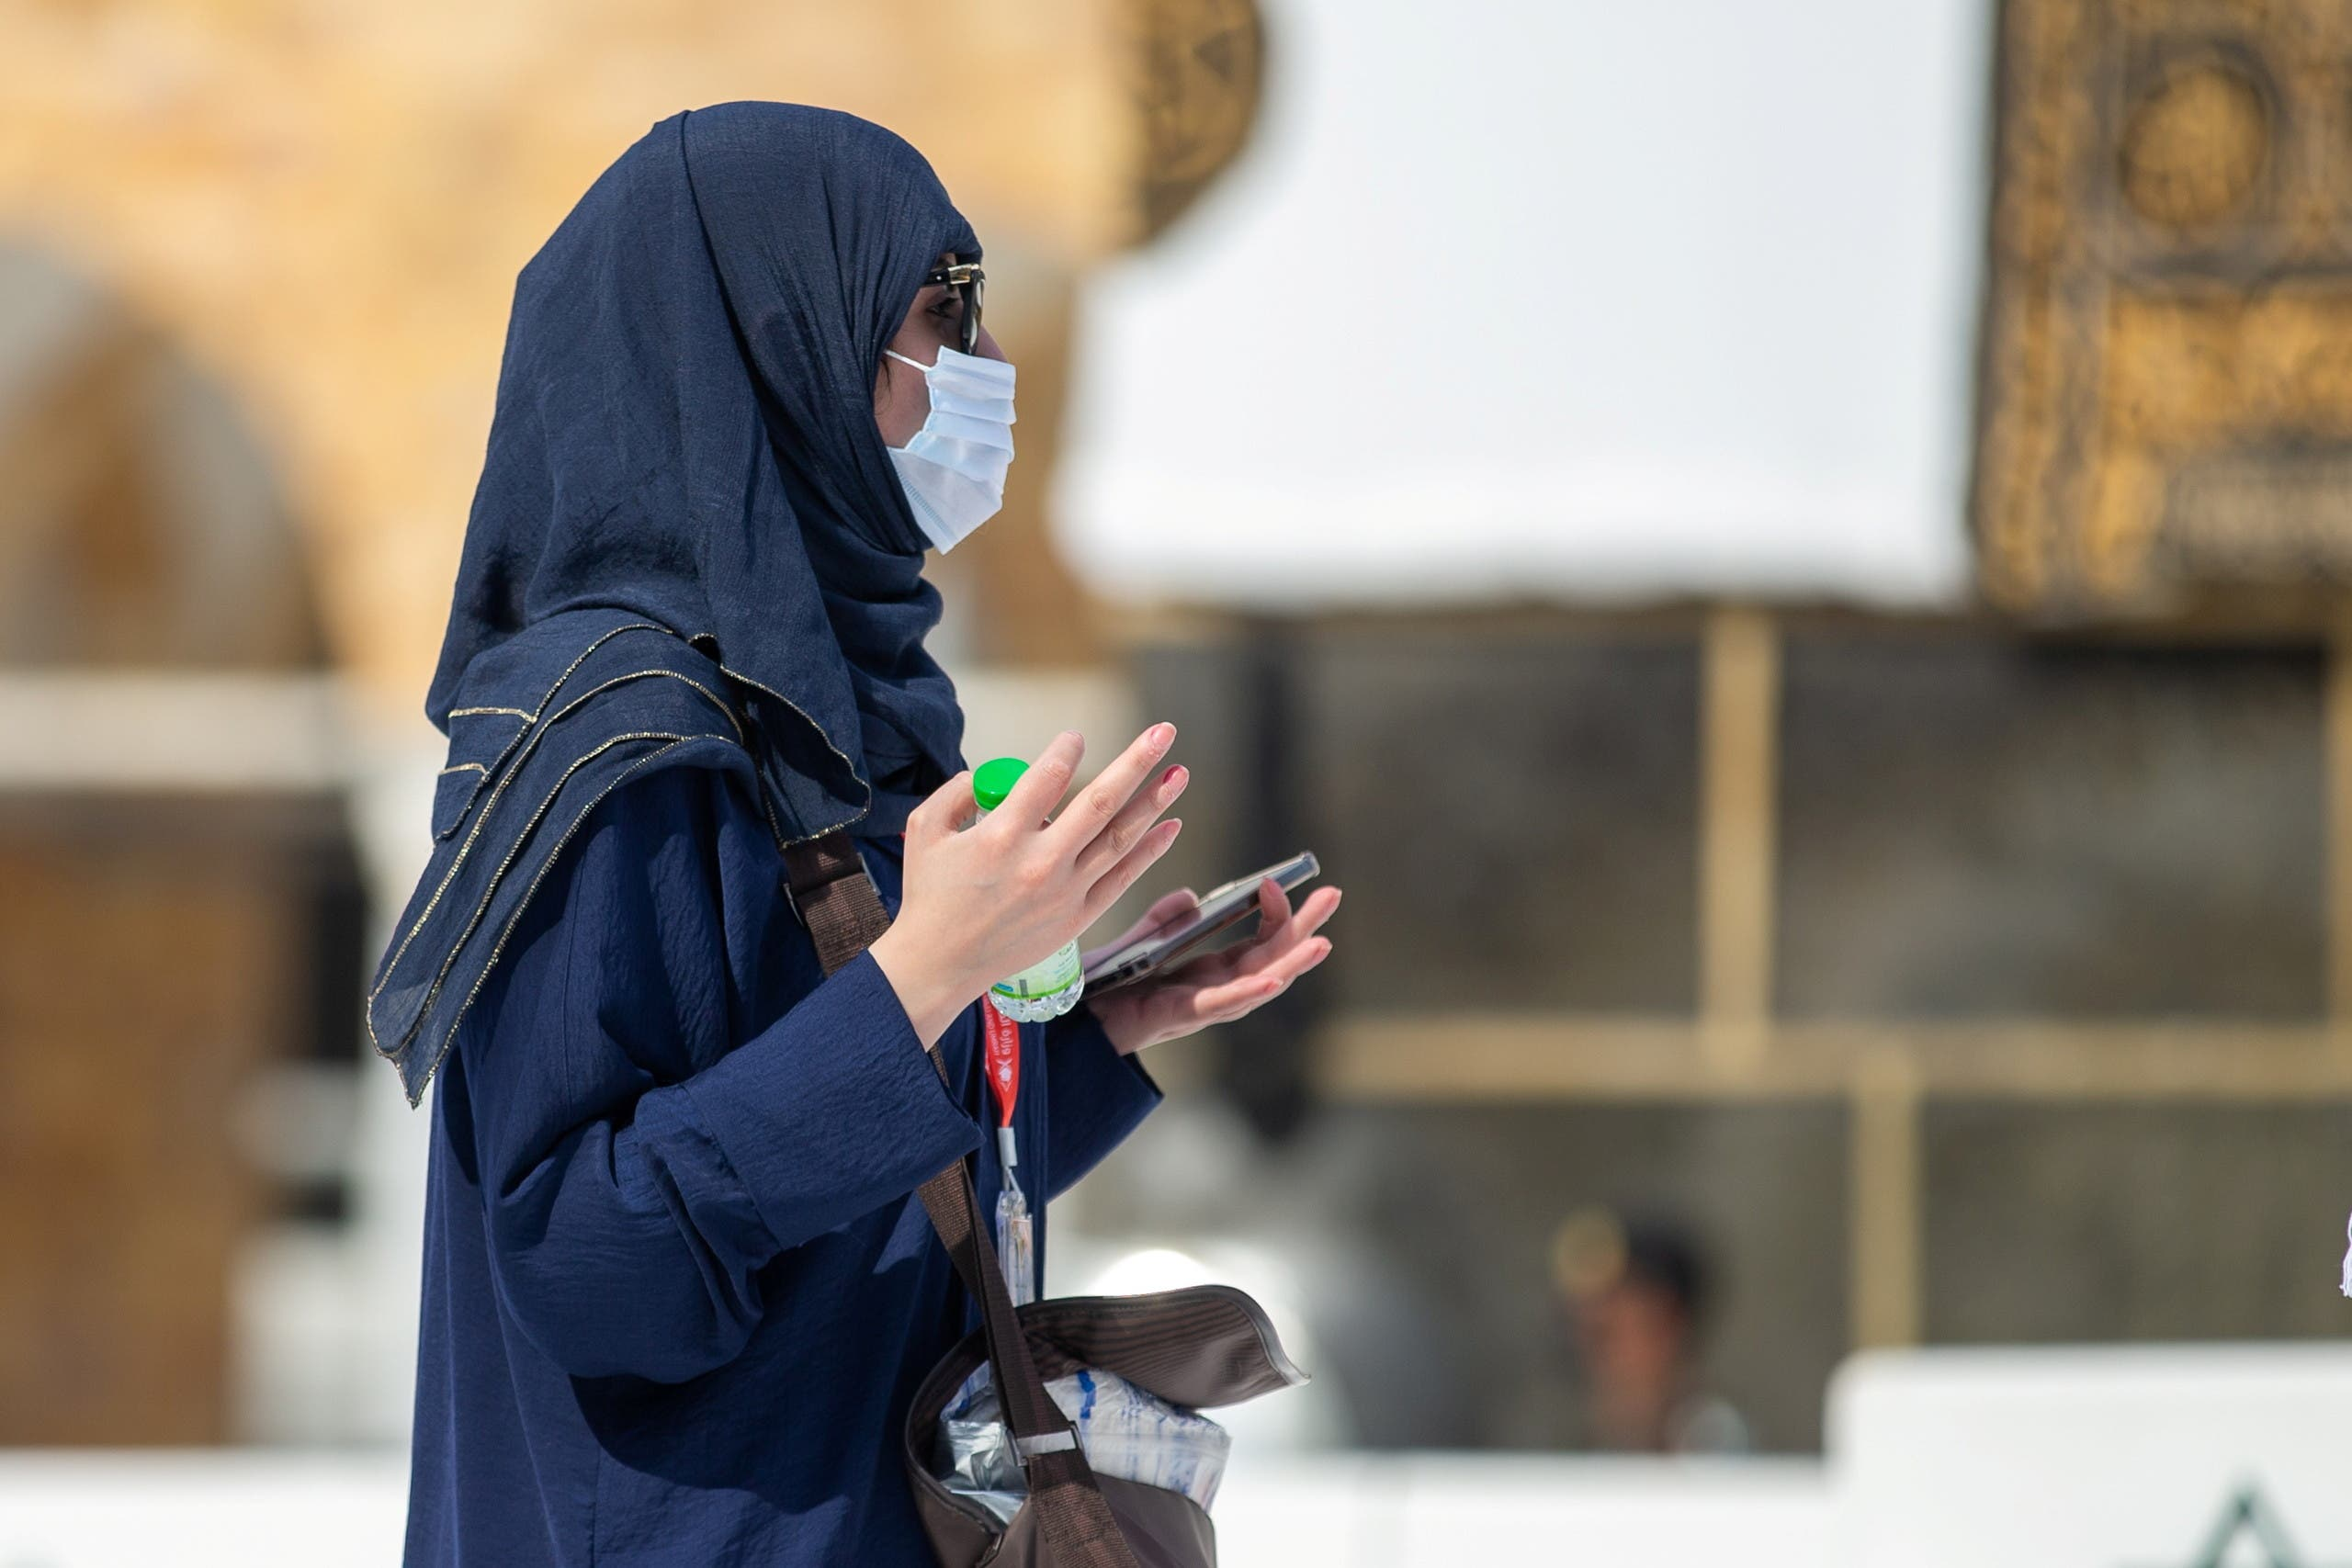 A female pilgrim gestures as she performs Tawaf around Kaaba at the Grand Mosque during the annual Haj pilgrimage, in the holy city of Mecca, Saudi Arabia, July 17, 2021. (Reuters)